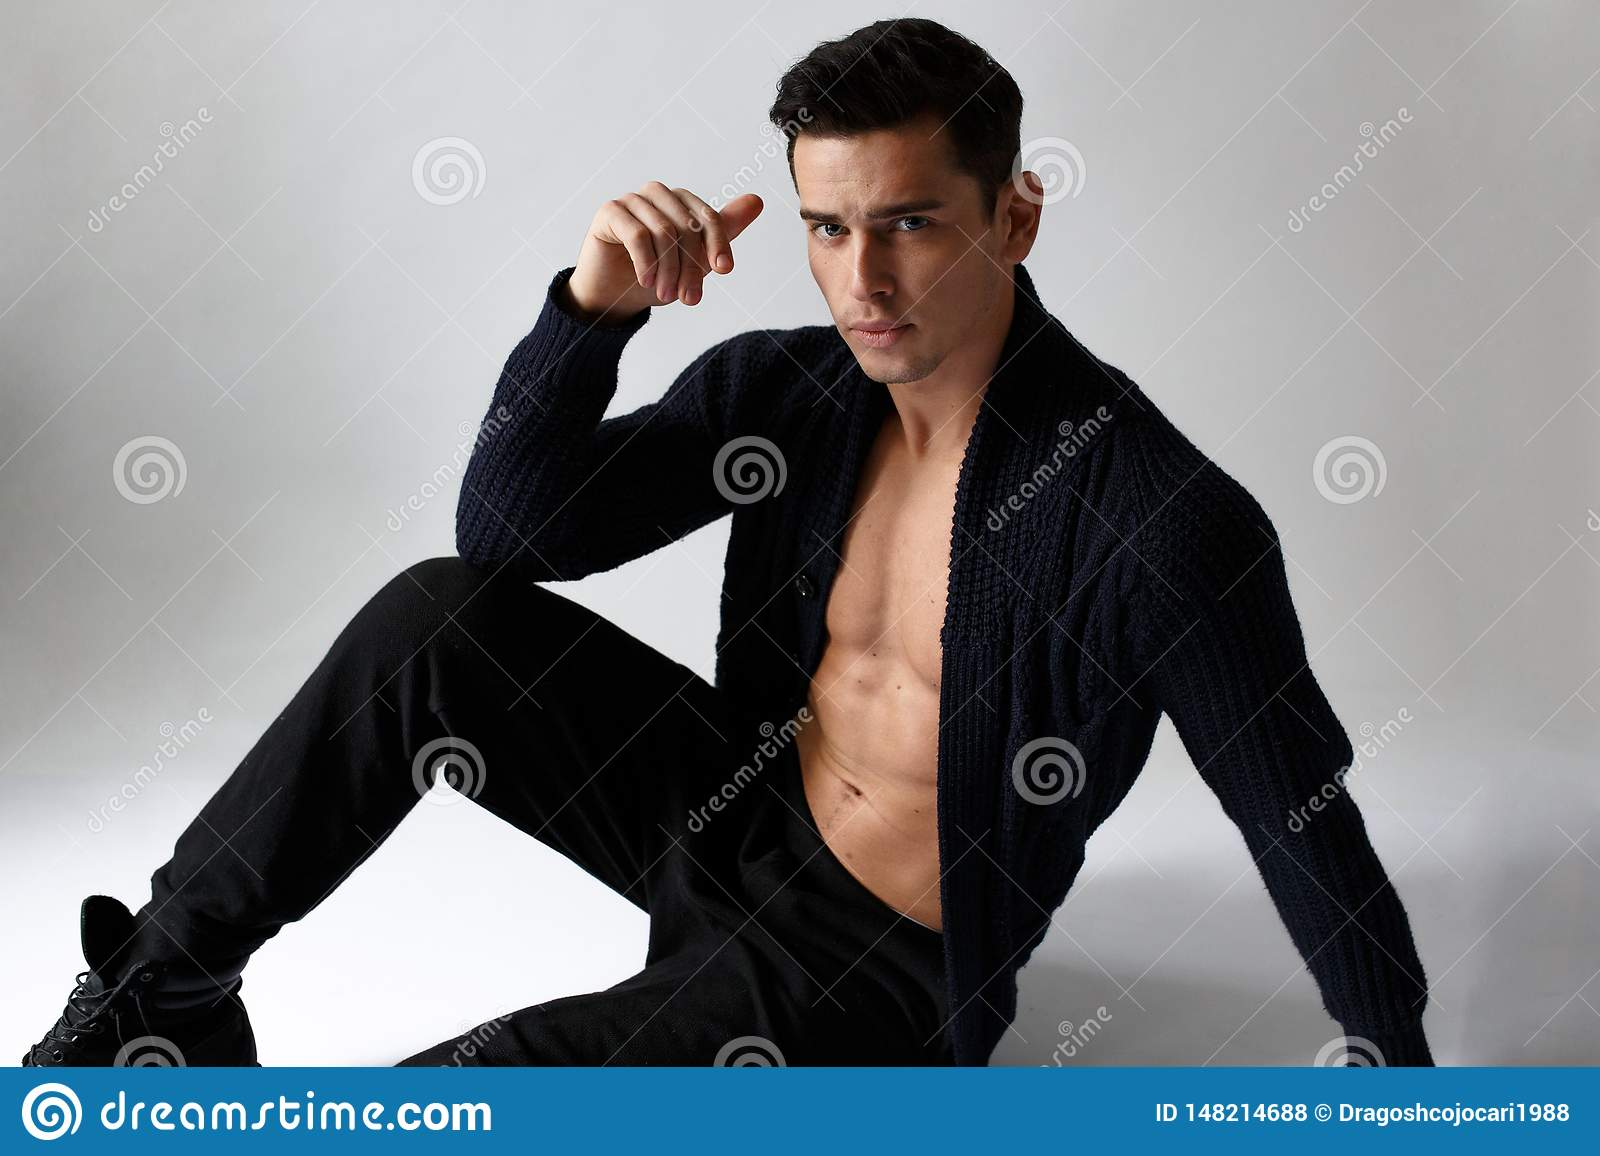 Young handsome athletic man posing in studio, wearing in black clothes, sit down,  on white background.